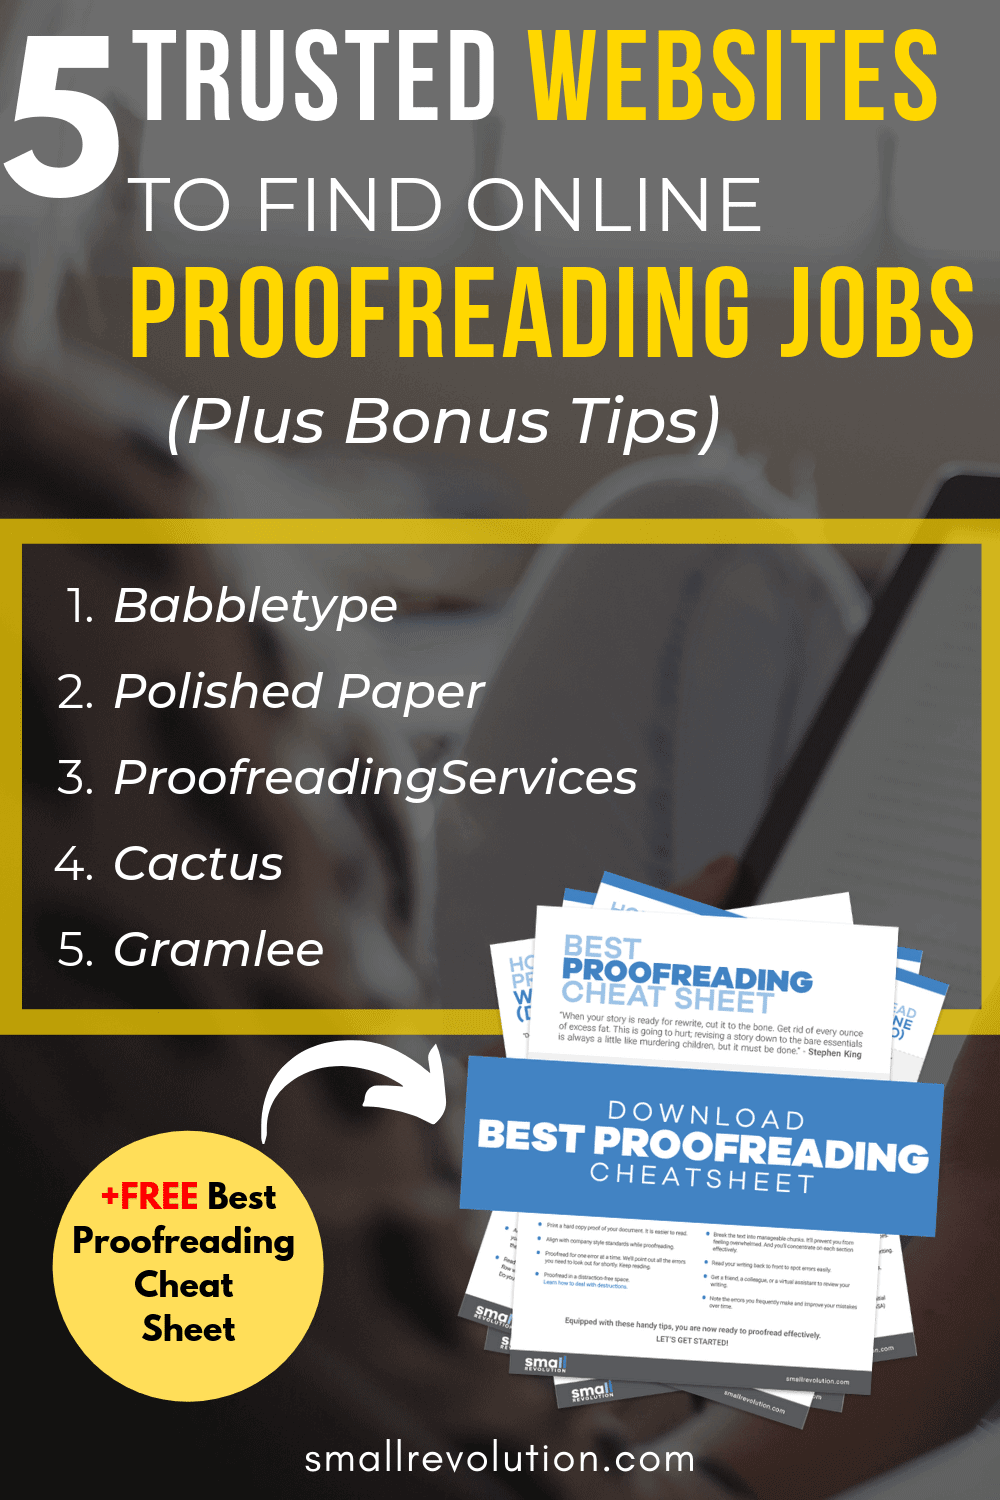 5 trusted websites to find online proofreading jobs